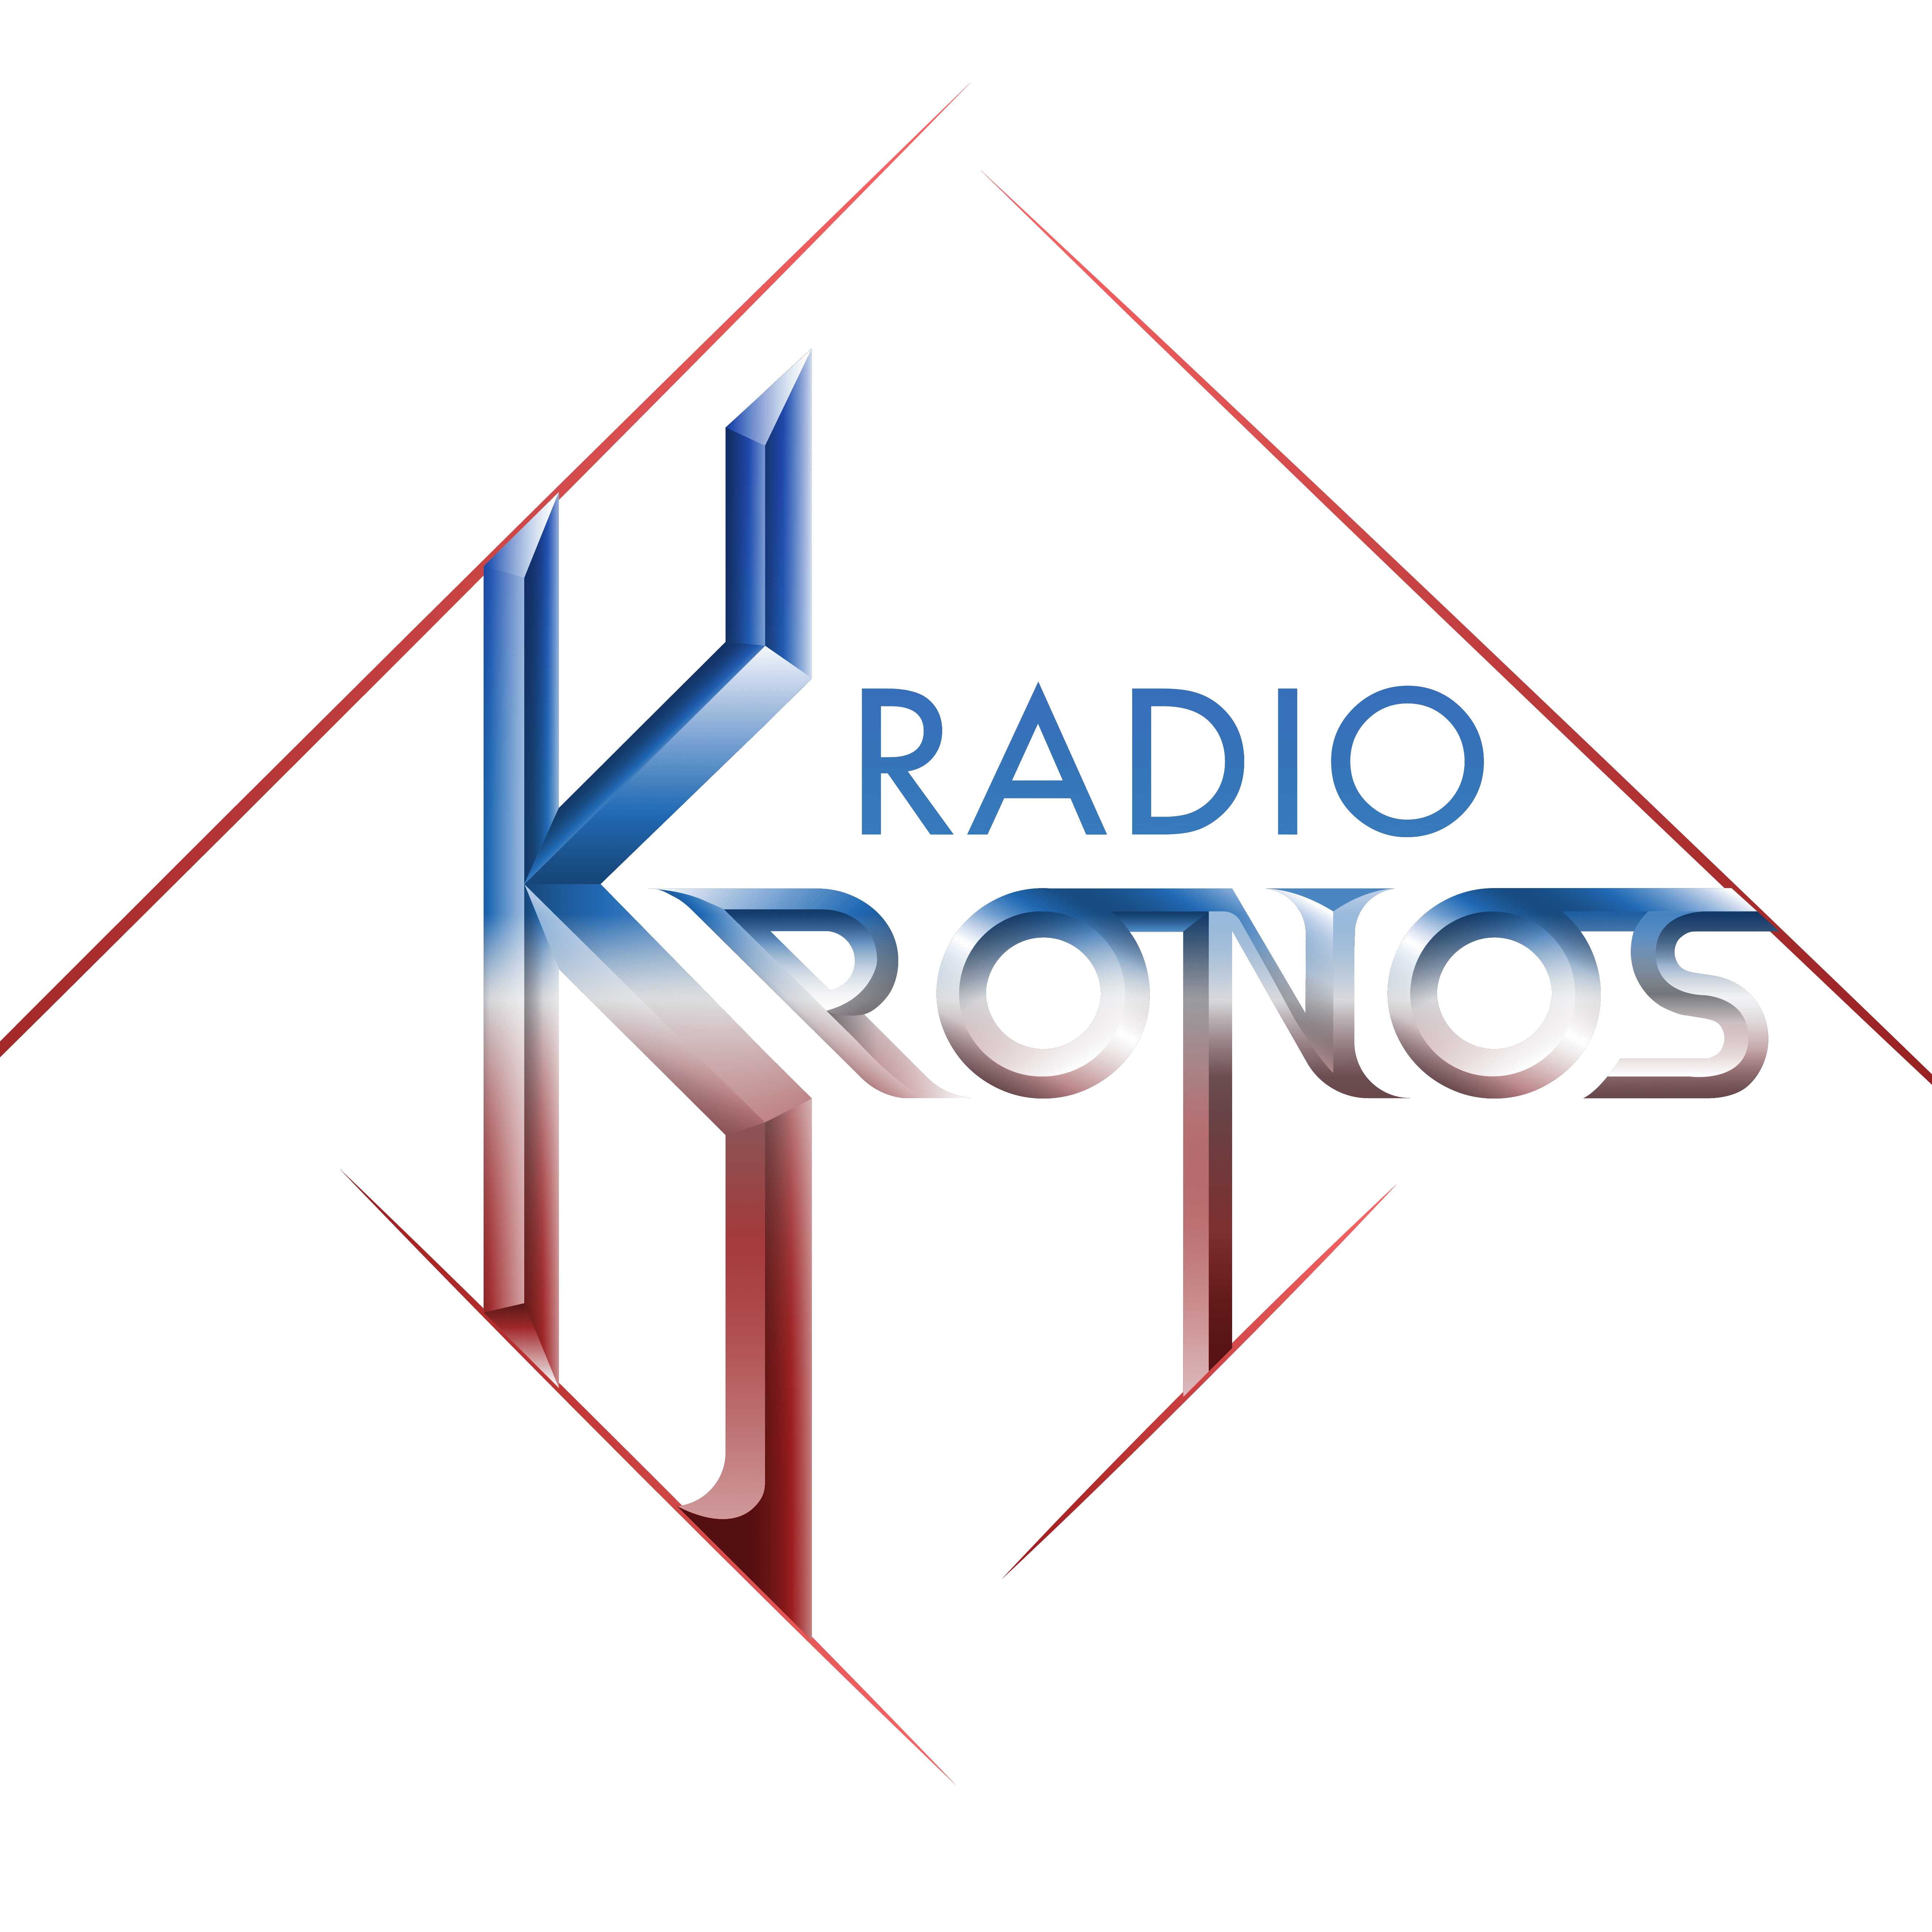 Radio Kronos - Emisora Digital - Noticias - Colombia, Mexico, Estados Unidos, Mundo